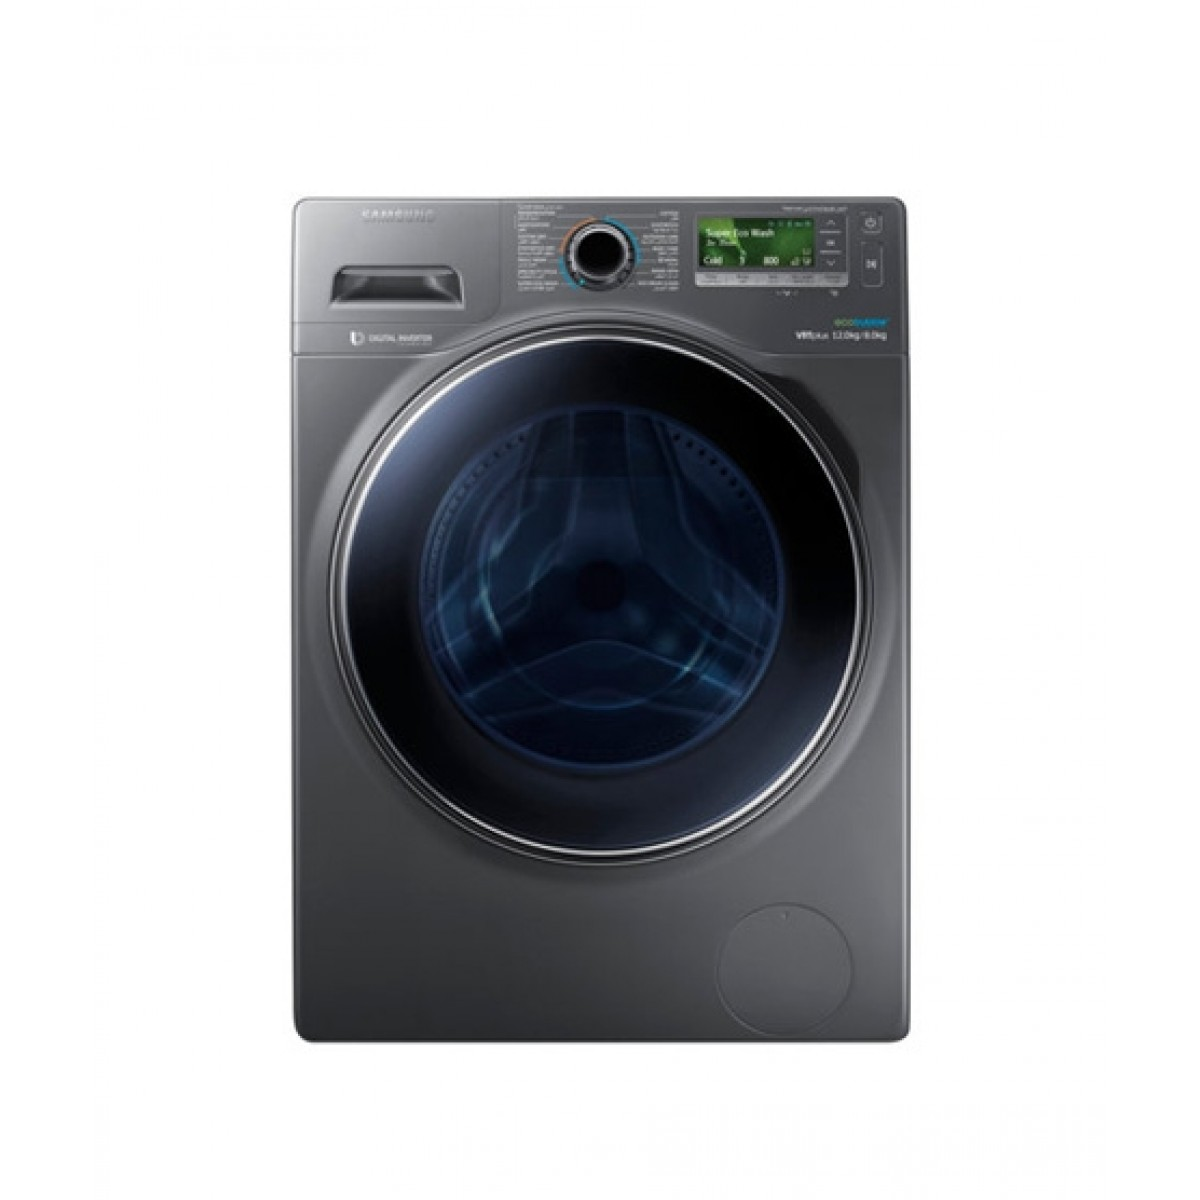 Samsung Fully Automatic Washing Machine 12kg Price In Pakistan Buy Samsung Front Load Washing Machine Wd12j8420gx Ishopping Pk